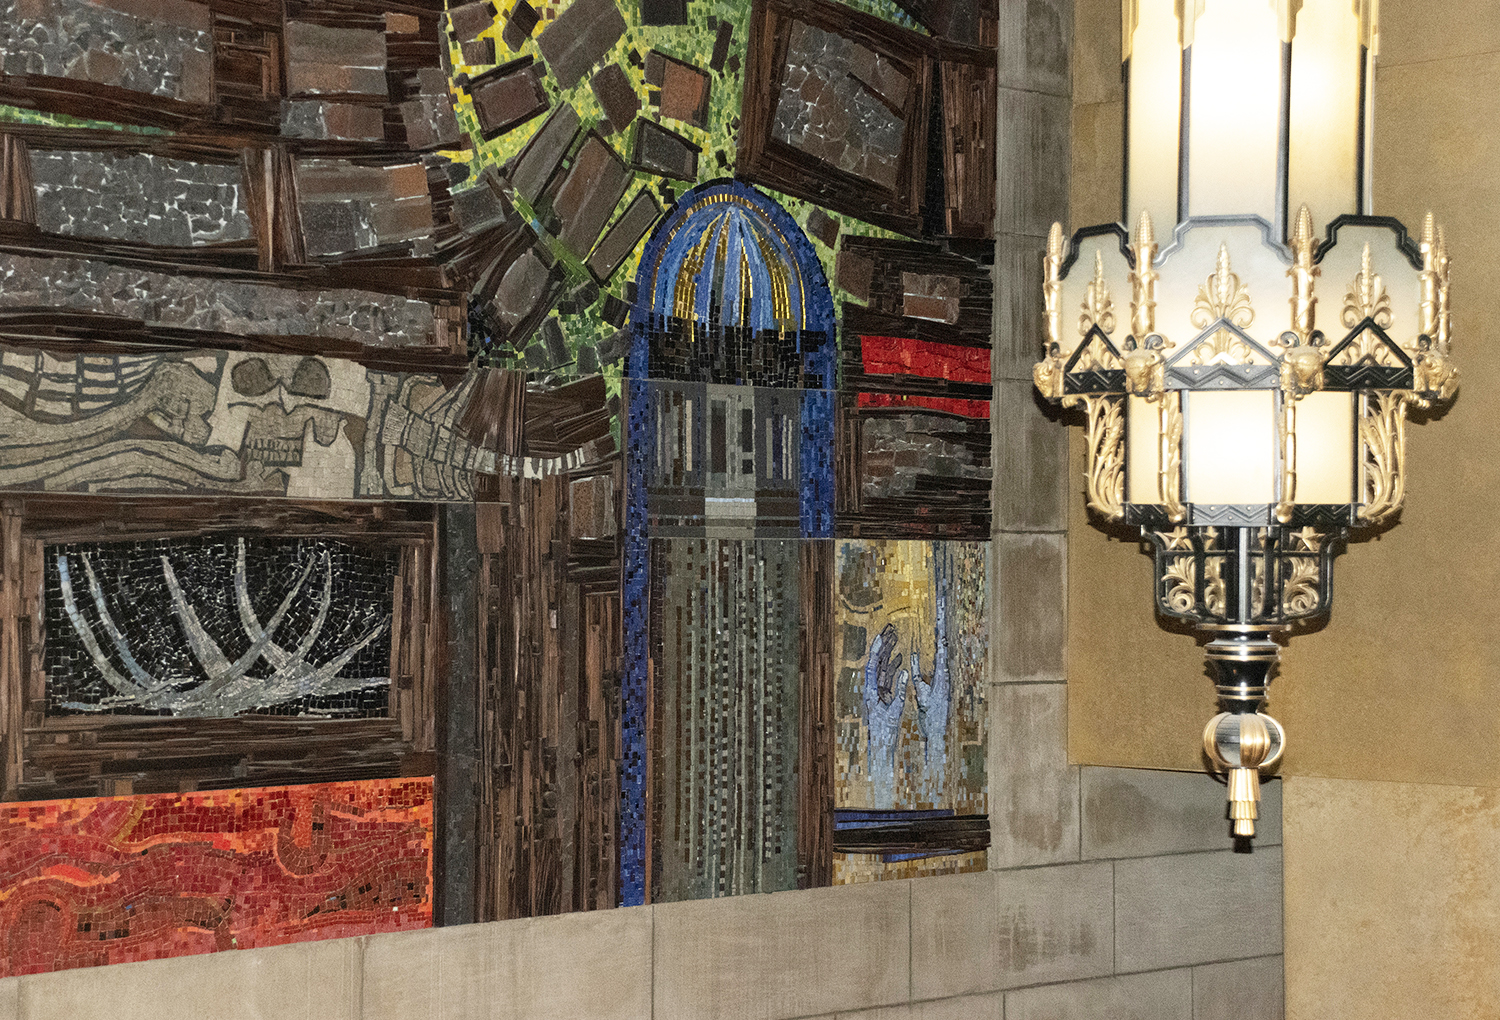 Foyer mosaic by Reinhold Marxhausen includes an image of the Capitol